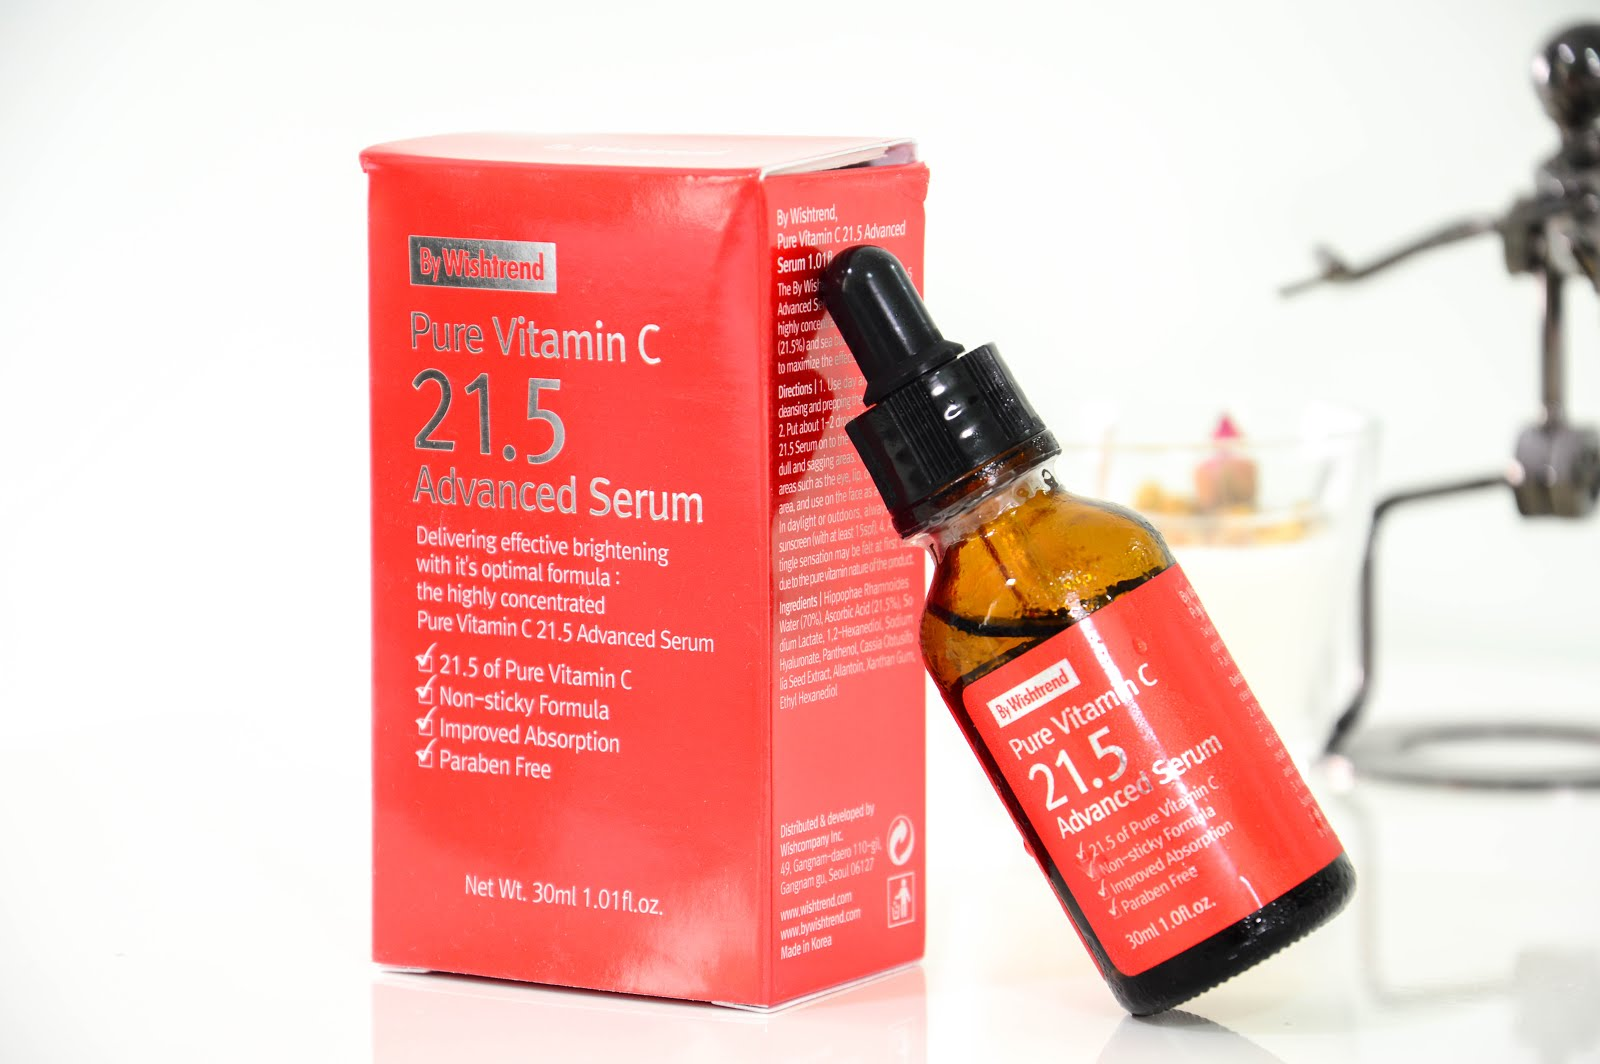 By Wishtrend Pure Vitamin C 21.5 Advanced Serum review